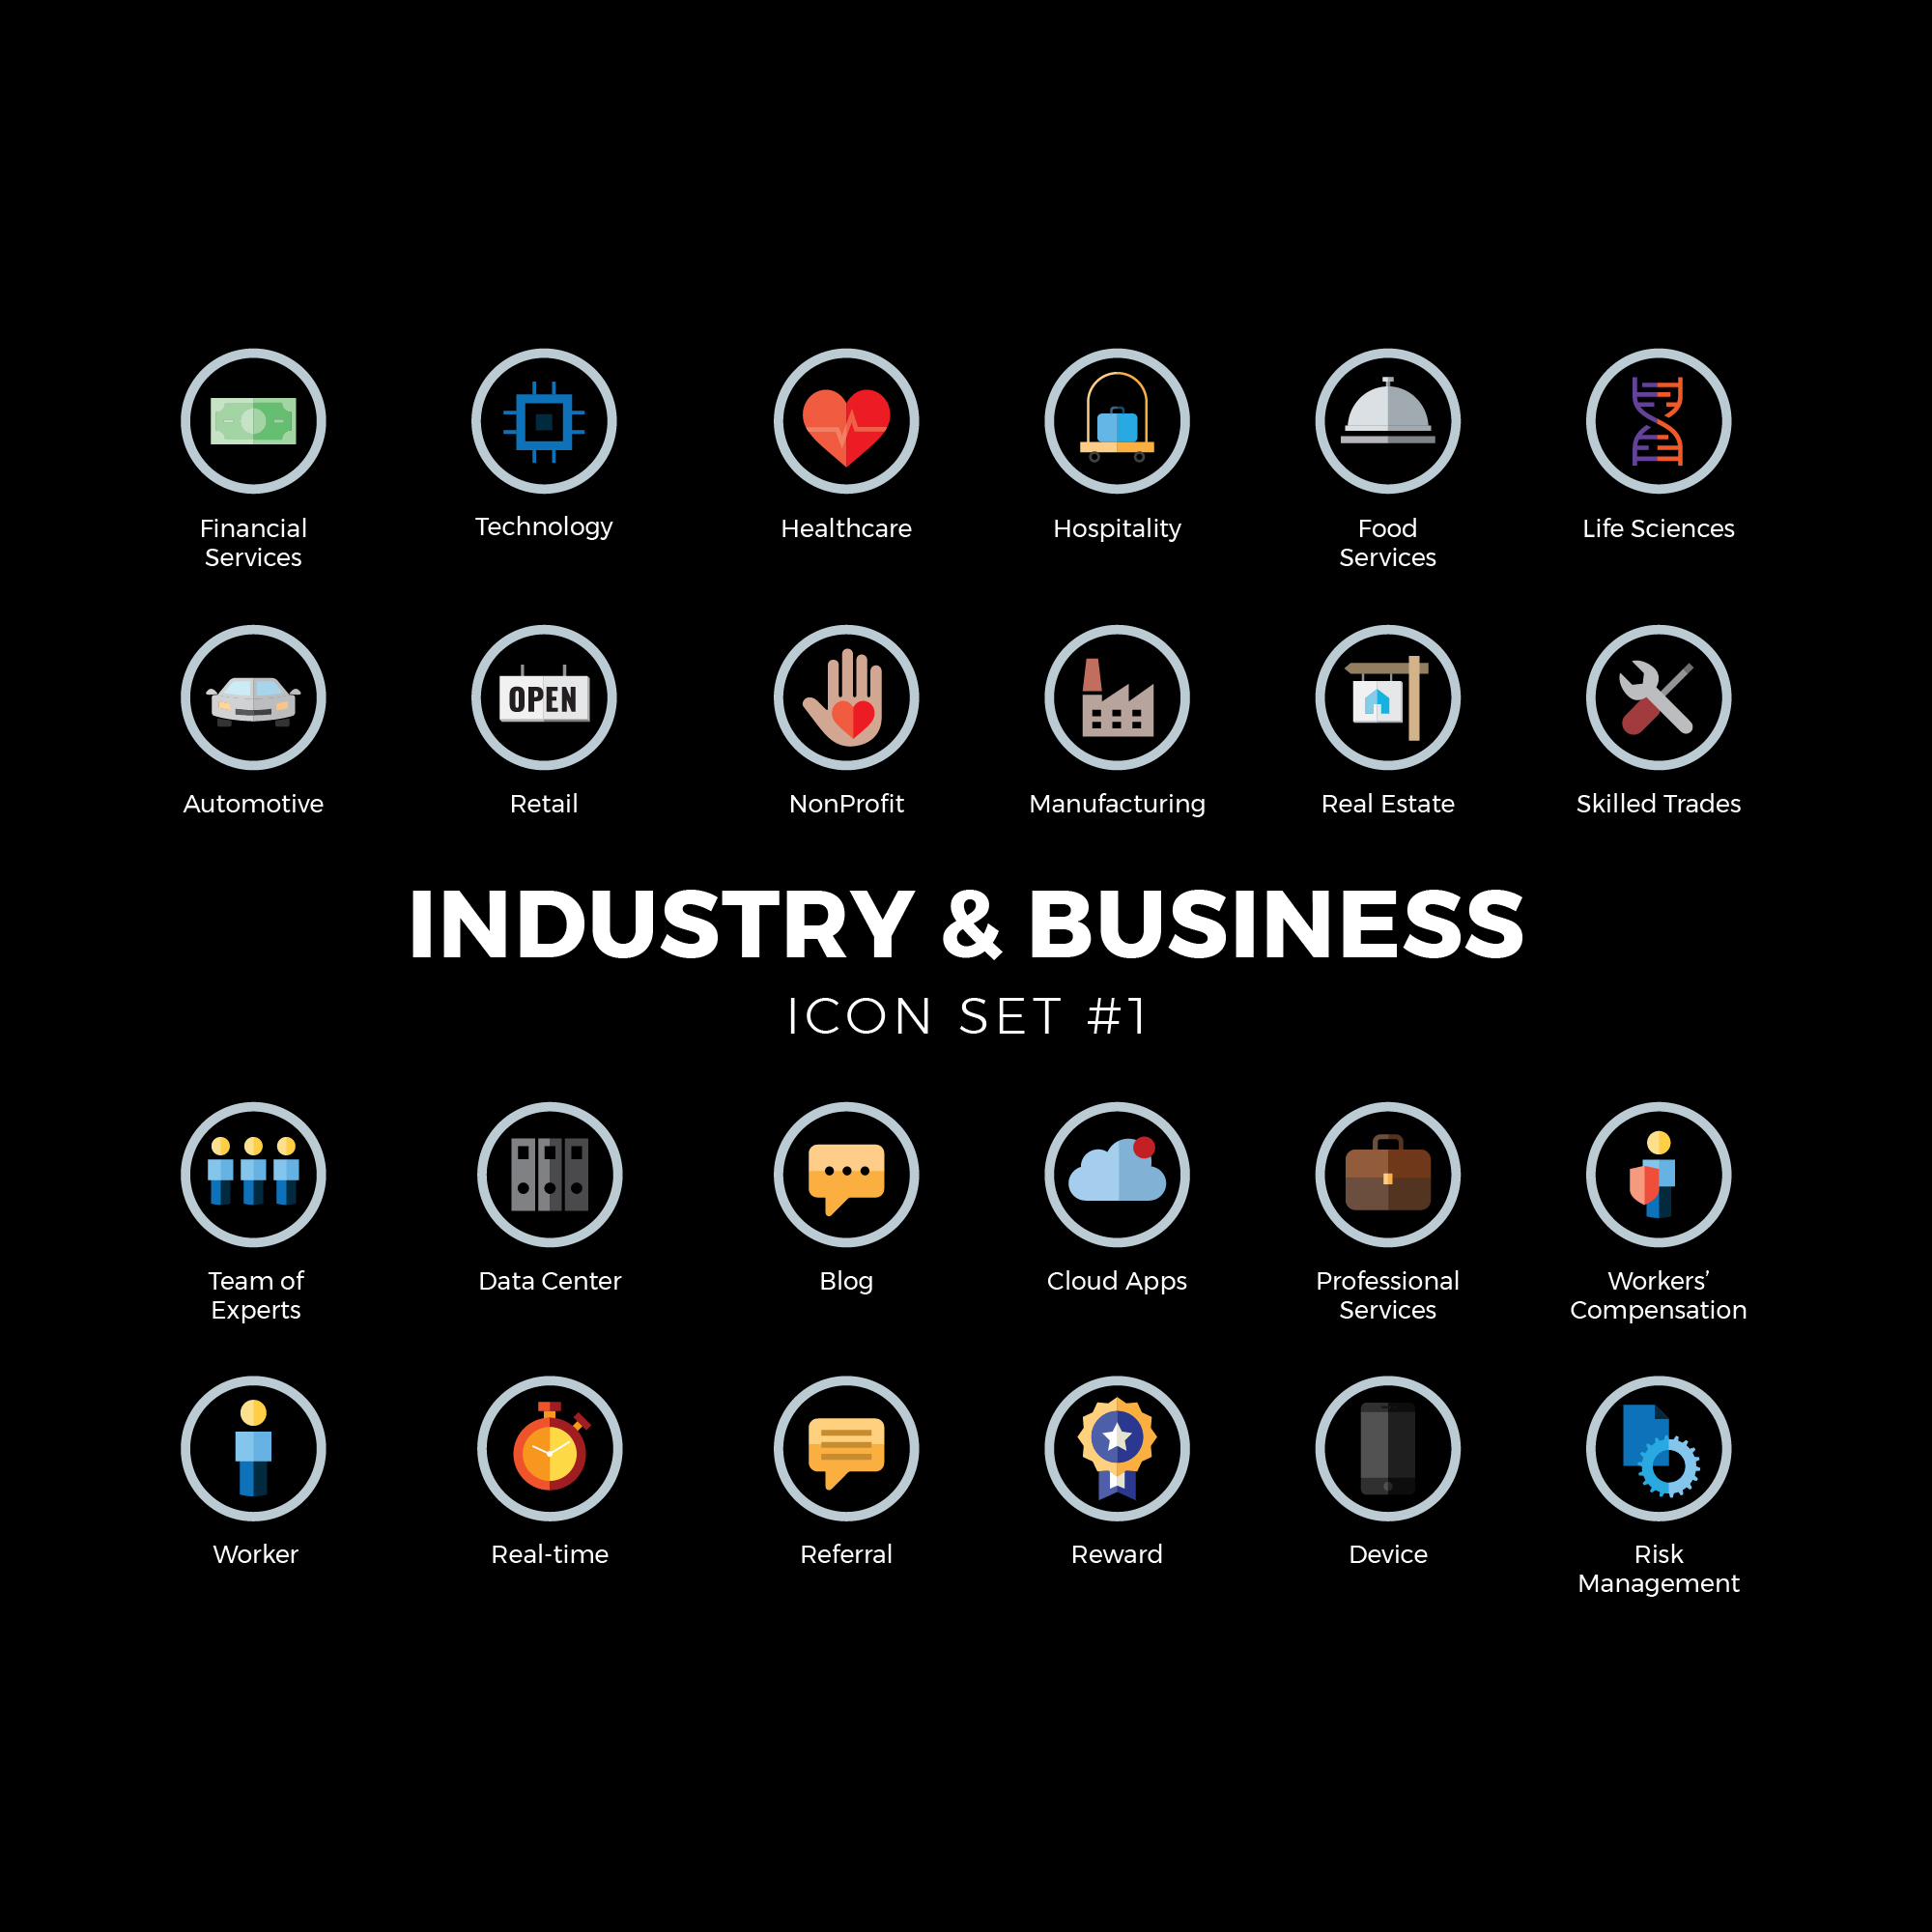 Industry & Business Icon Set vector icons for commercial use. Icons are full color in a gray circle with a folded look